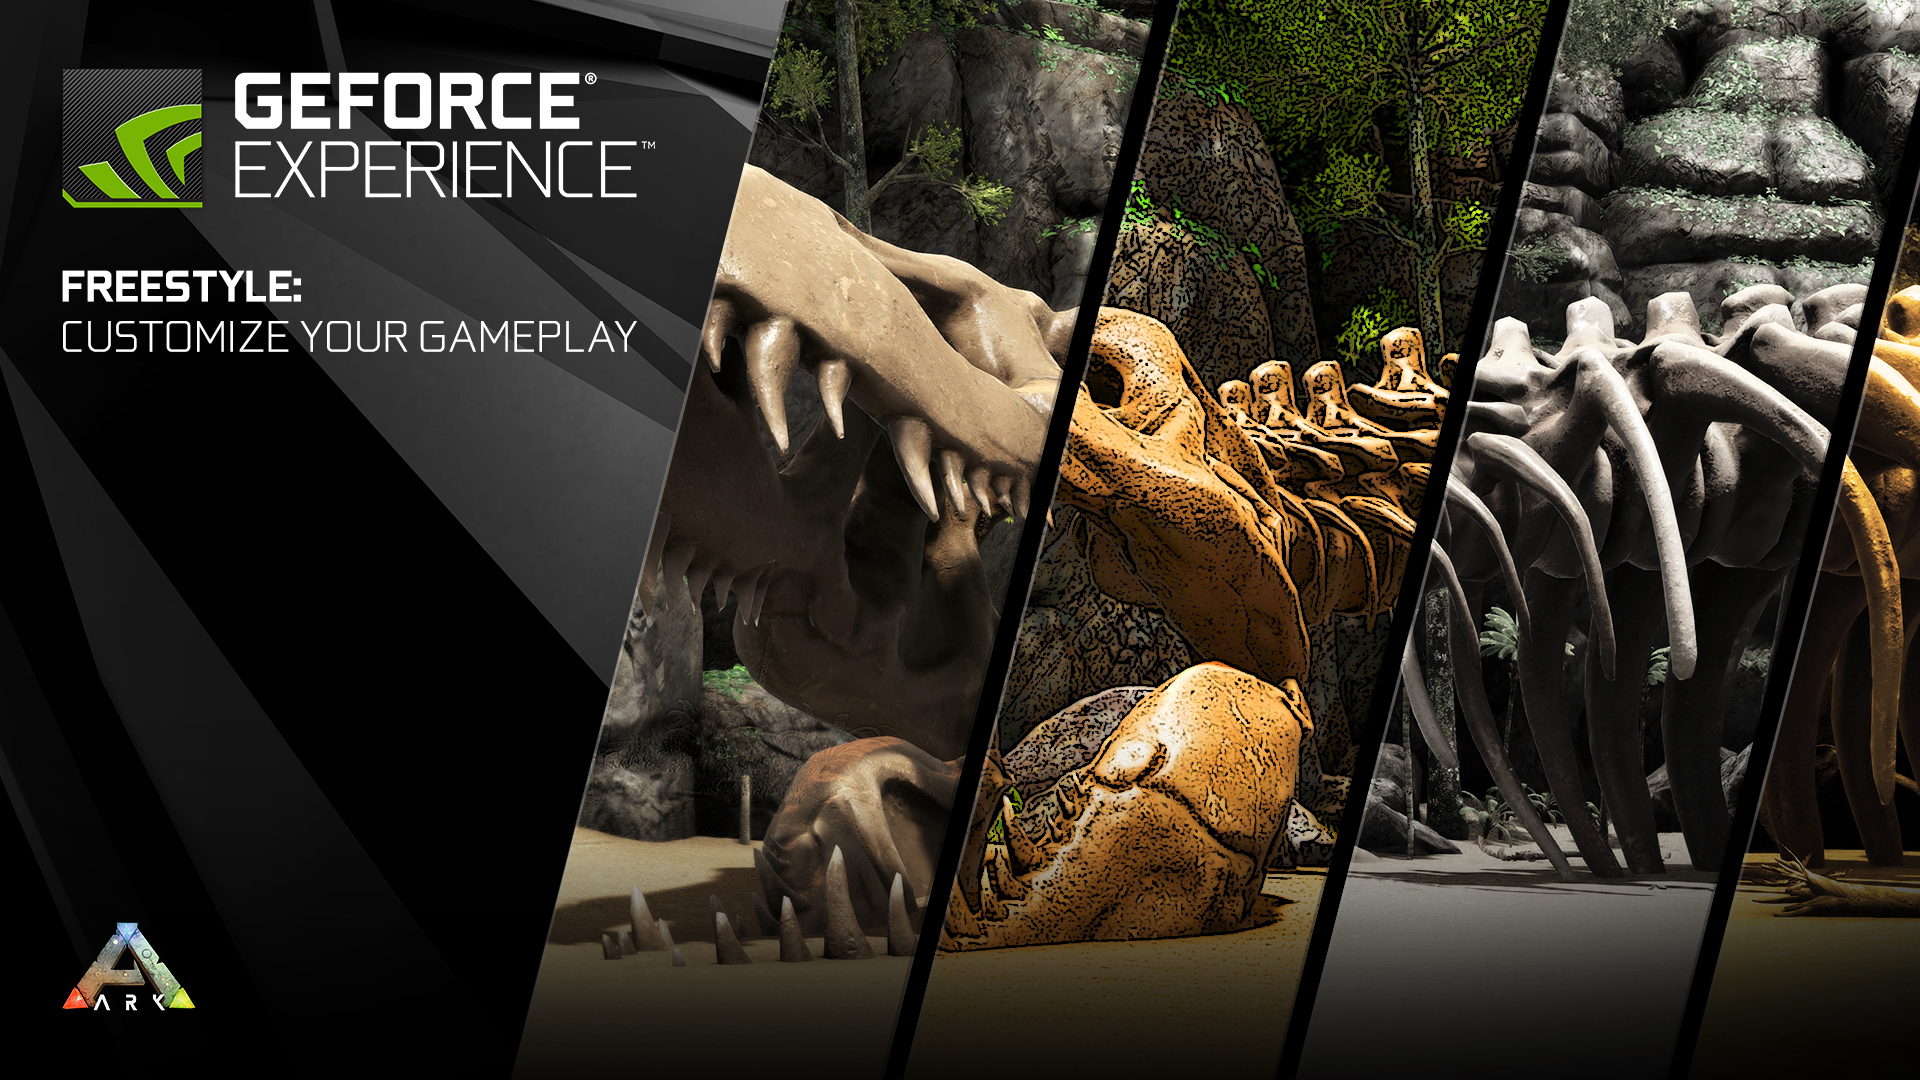 GeForce Experience At CES 2018: New Ways To Customize